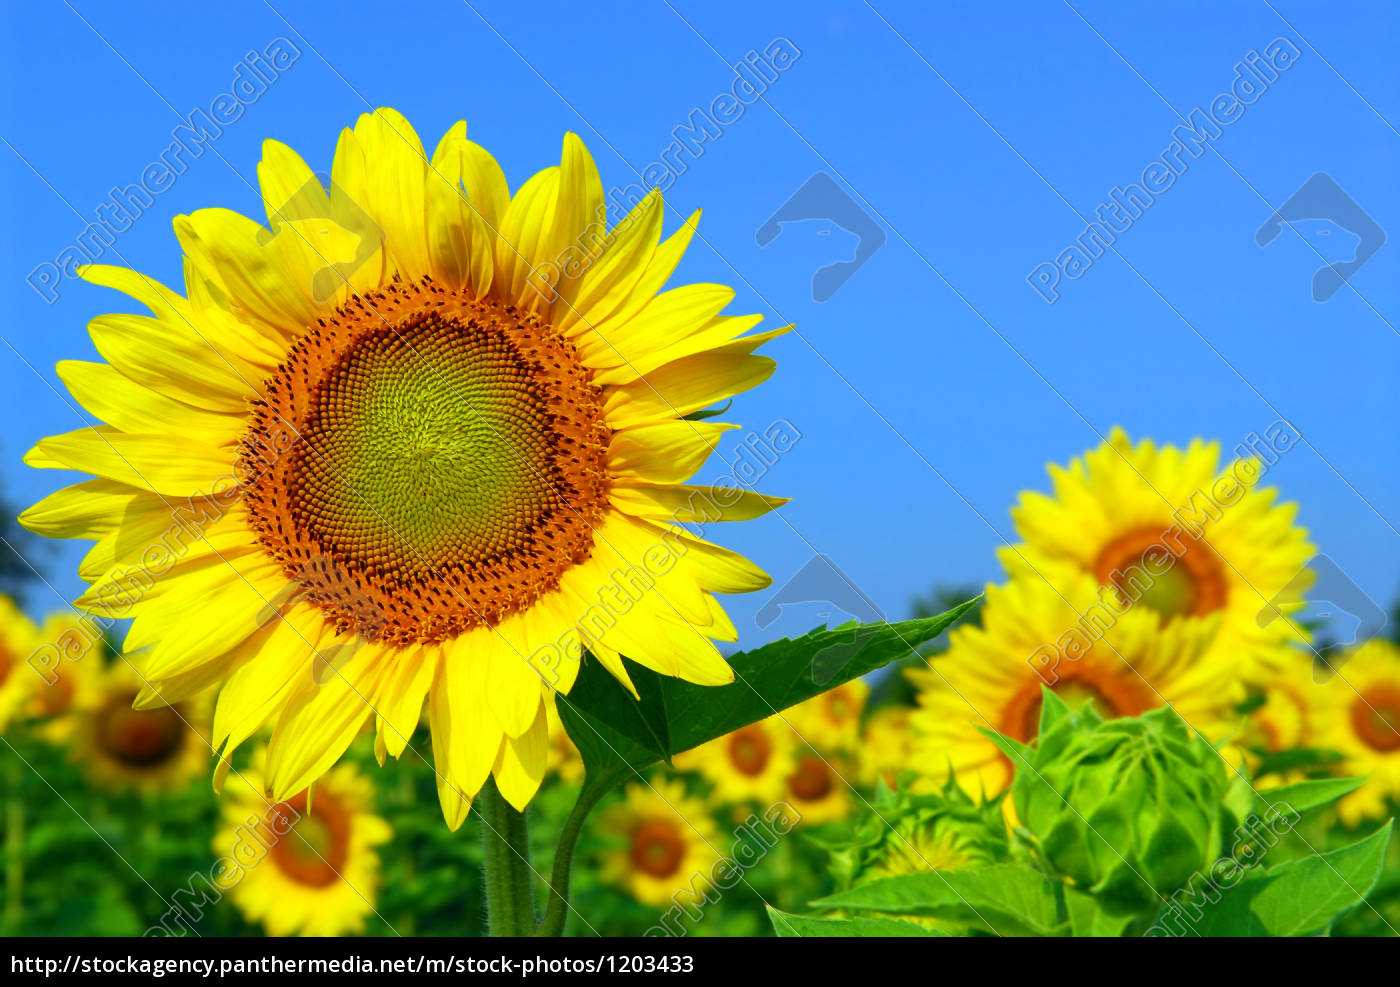 sunflower, field - 1203433